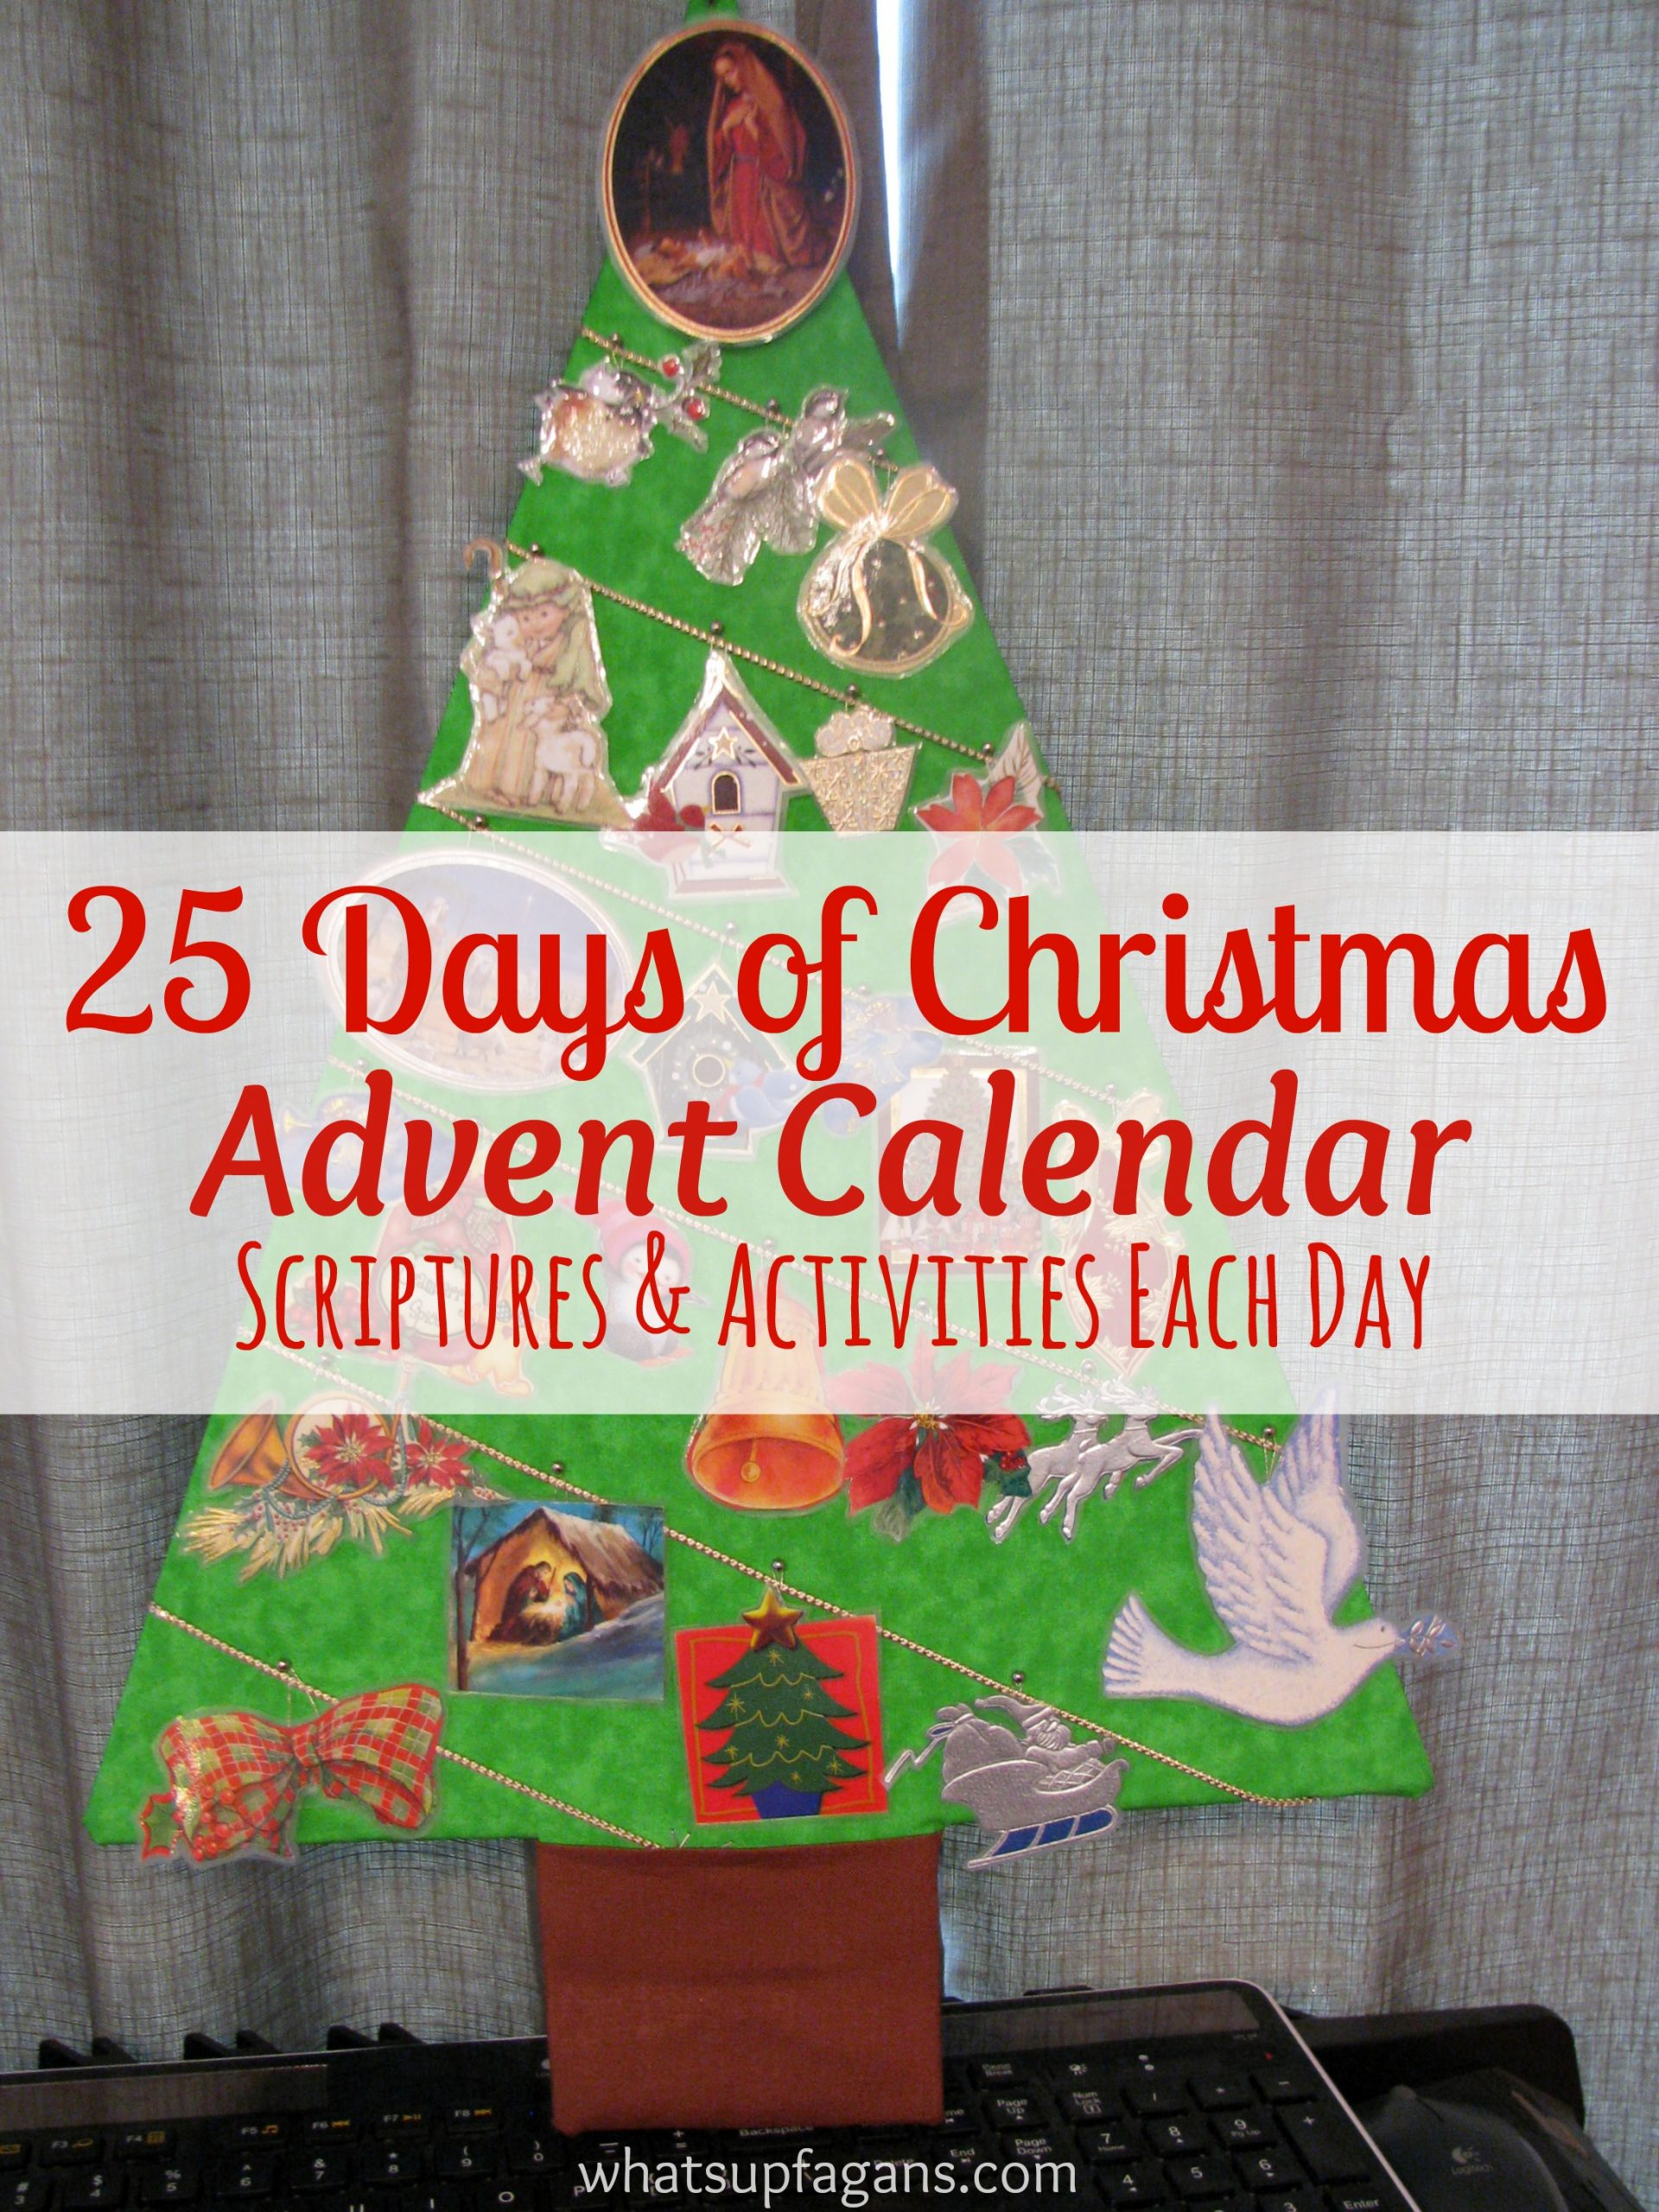 25 Days Of Christmas Advent Calendar With What Is The Holiday Schedule For New College Of Florida